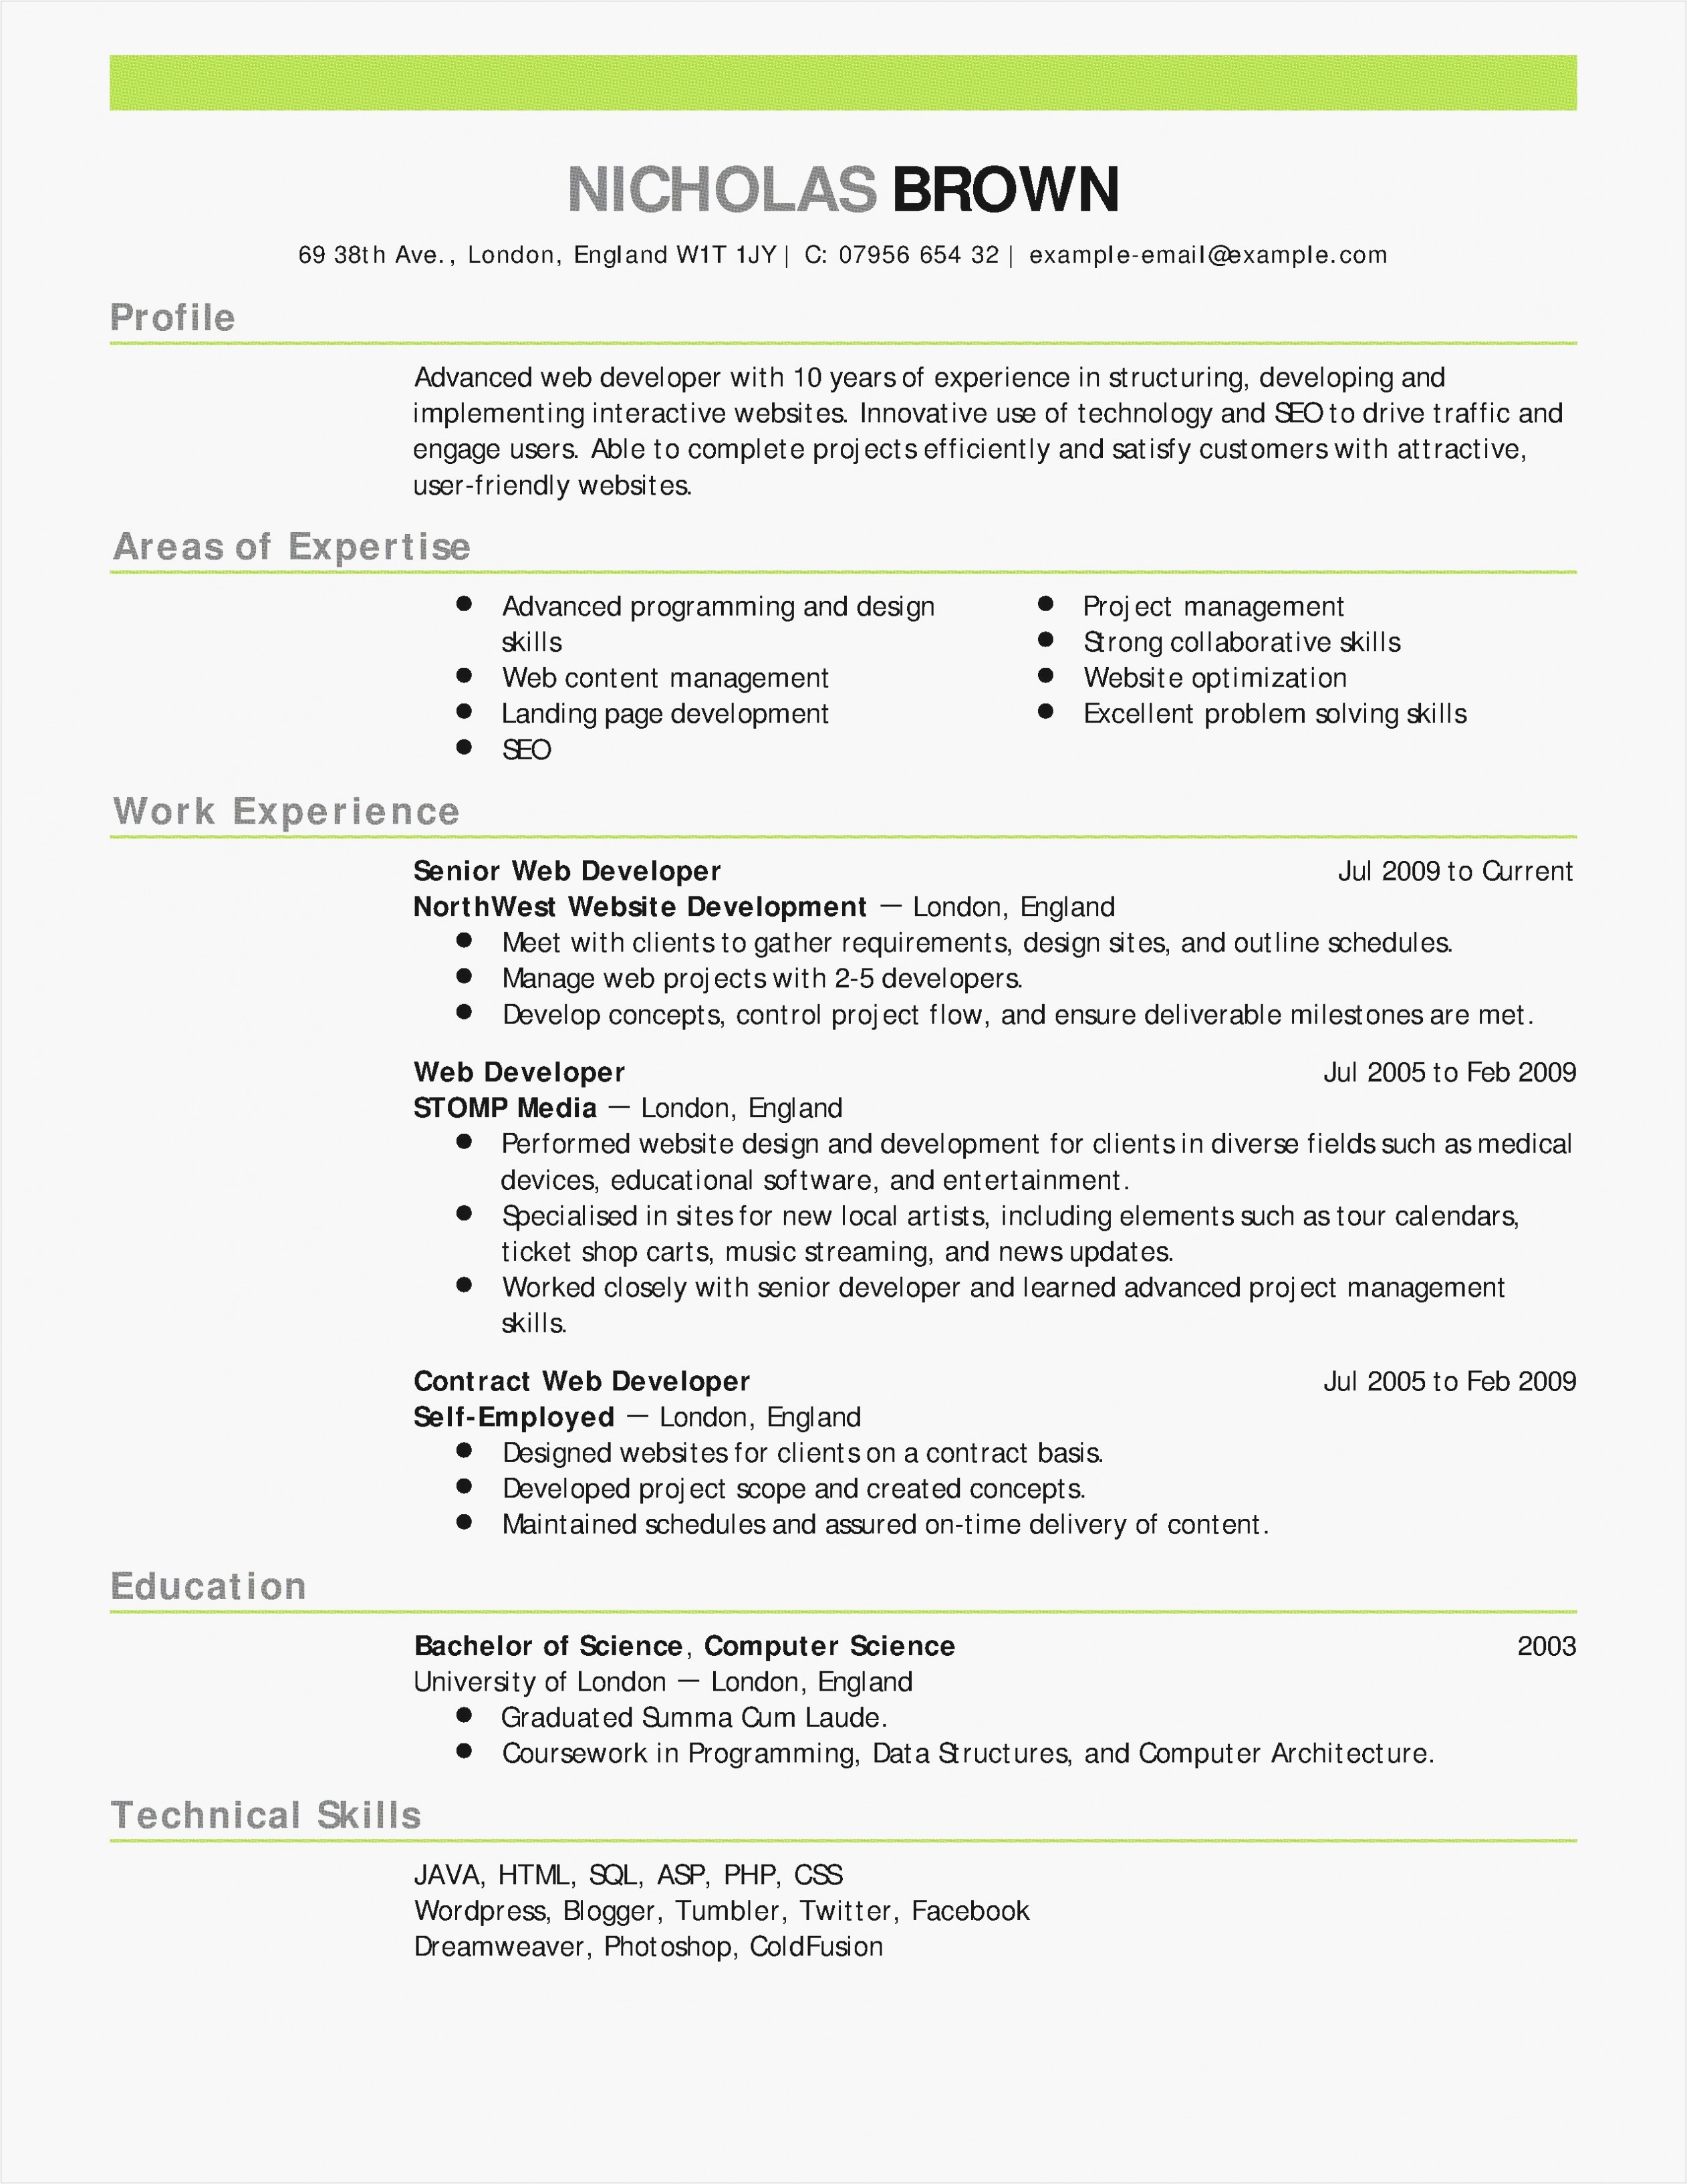 Resume Website Template Free Download - Letter Agreement Template Free Collection